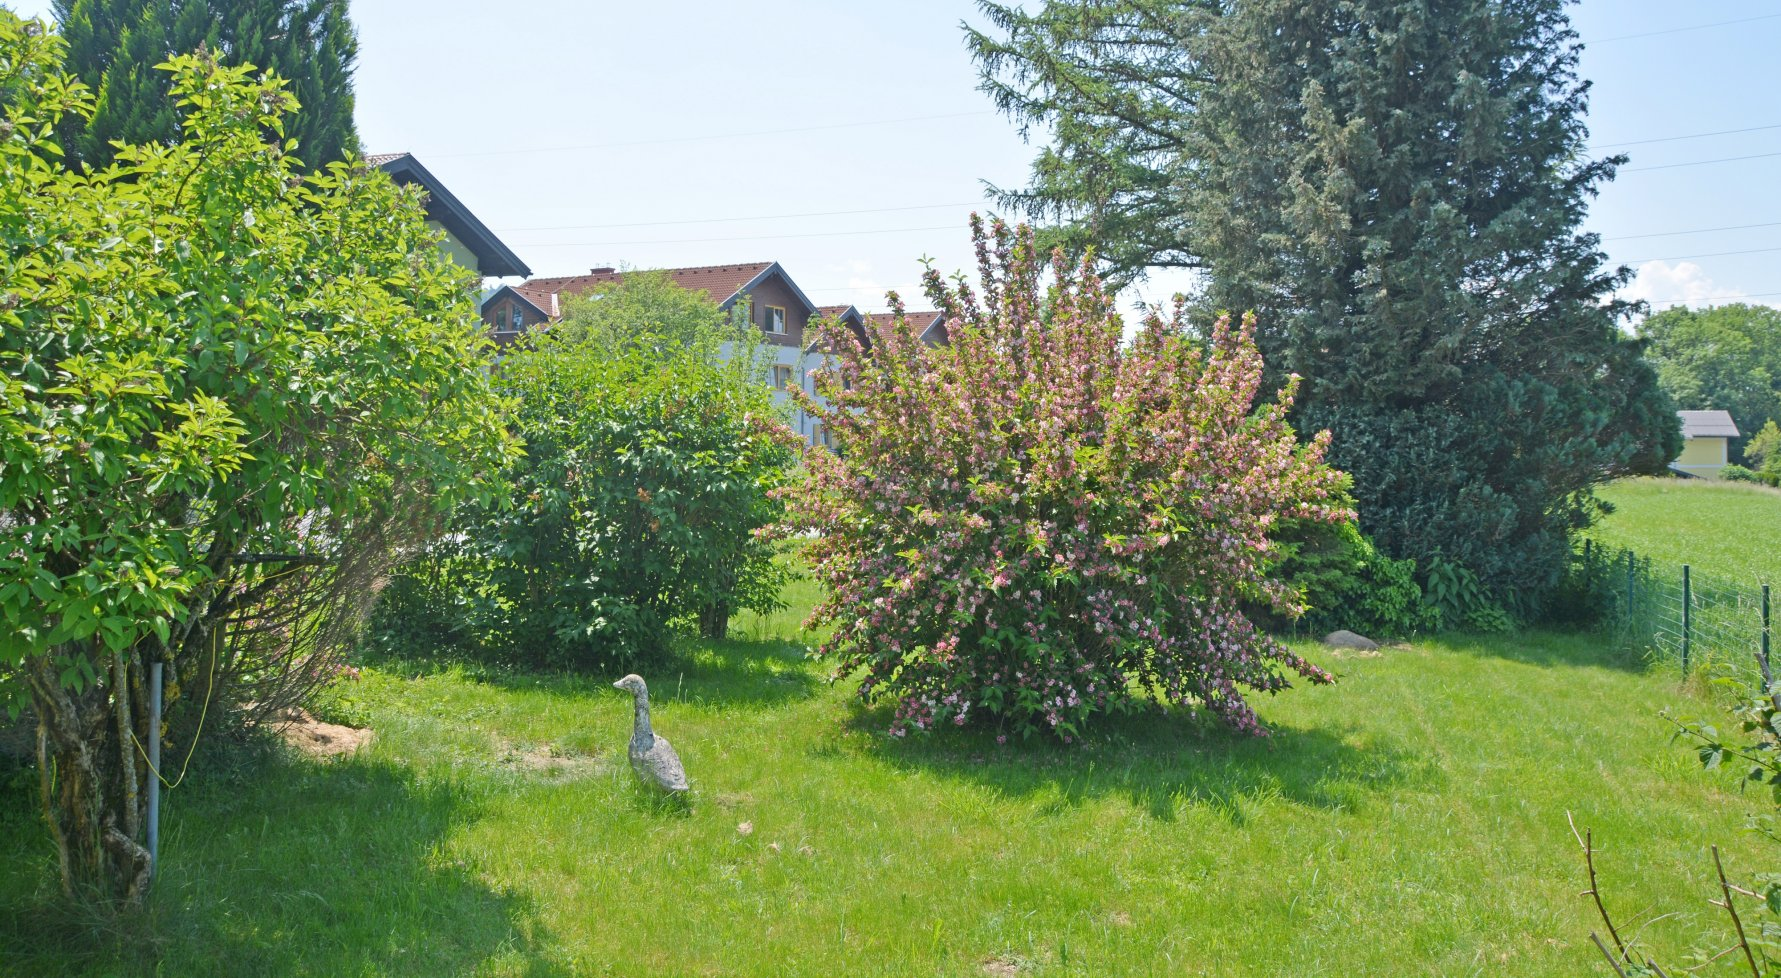 Property in 5301 Eugendorf bei Salzburg: What a blessing ... Living and working AT HOME! - picture 1